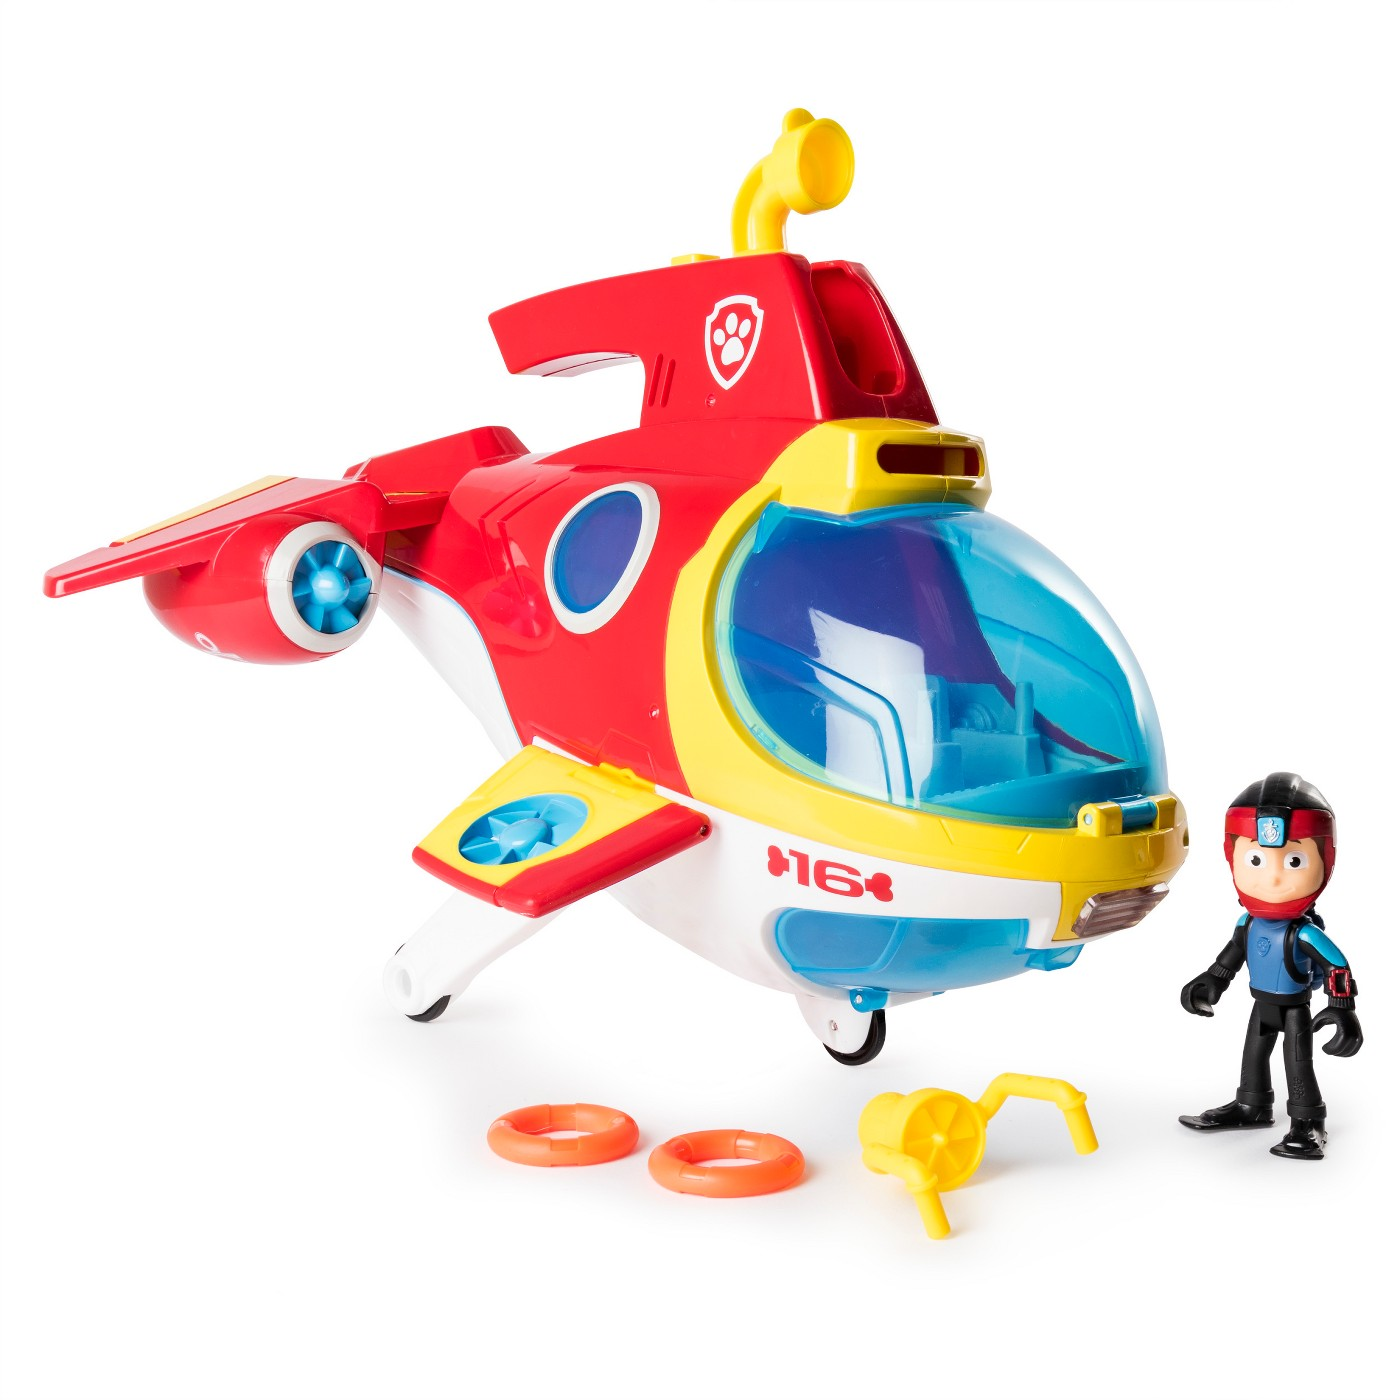 PAW Patrol Sub Patroller Transforming Vehicle with Lights, Sounds and Launcher - image 1 of 10